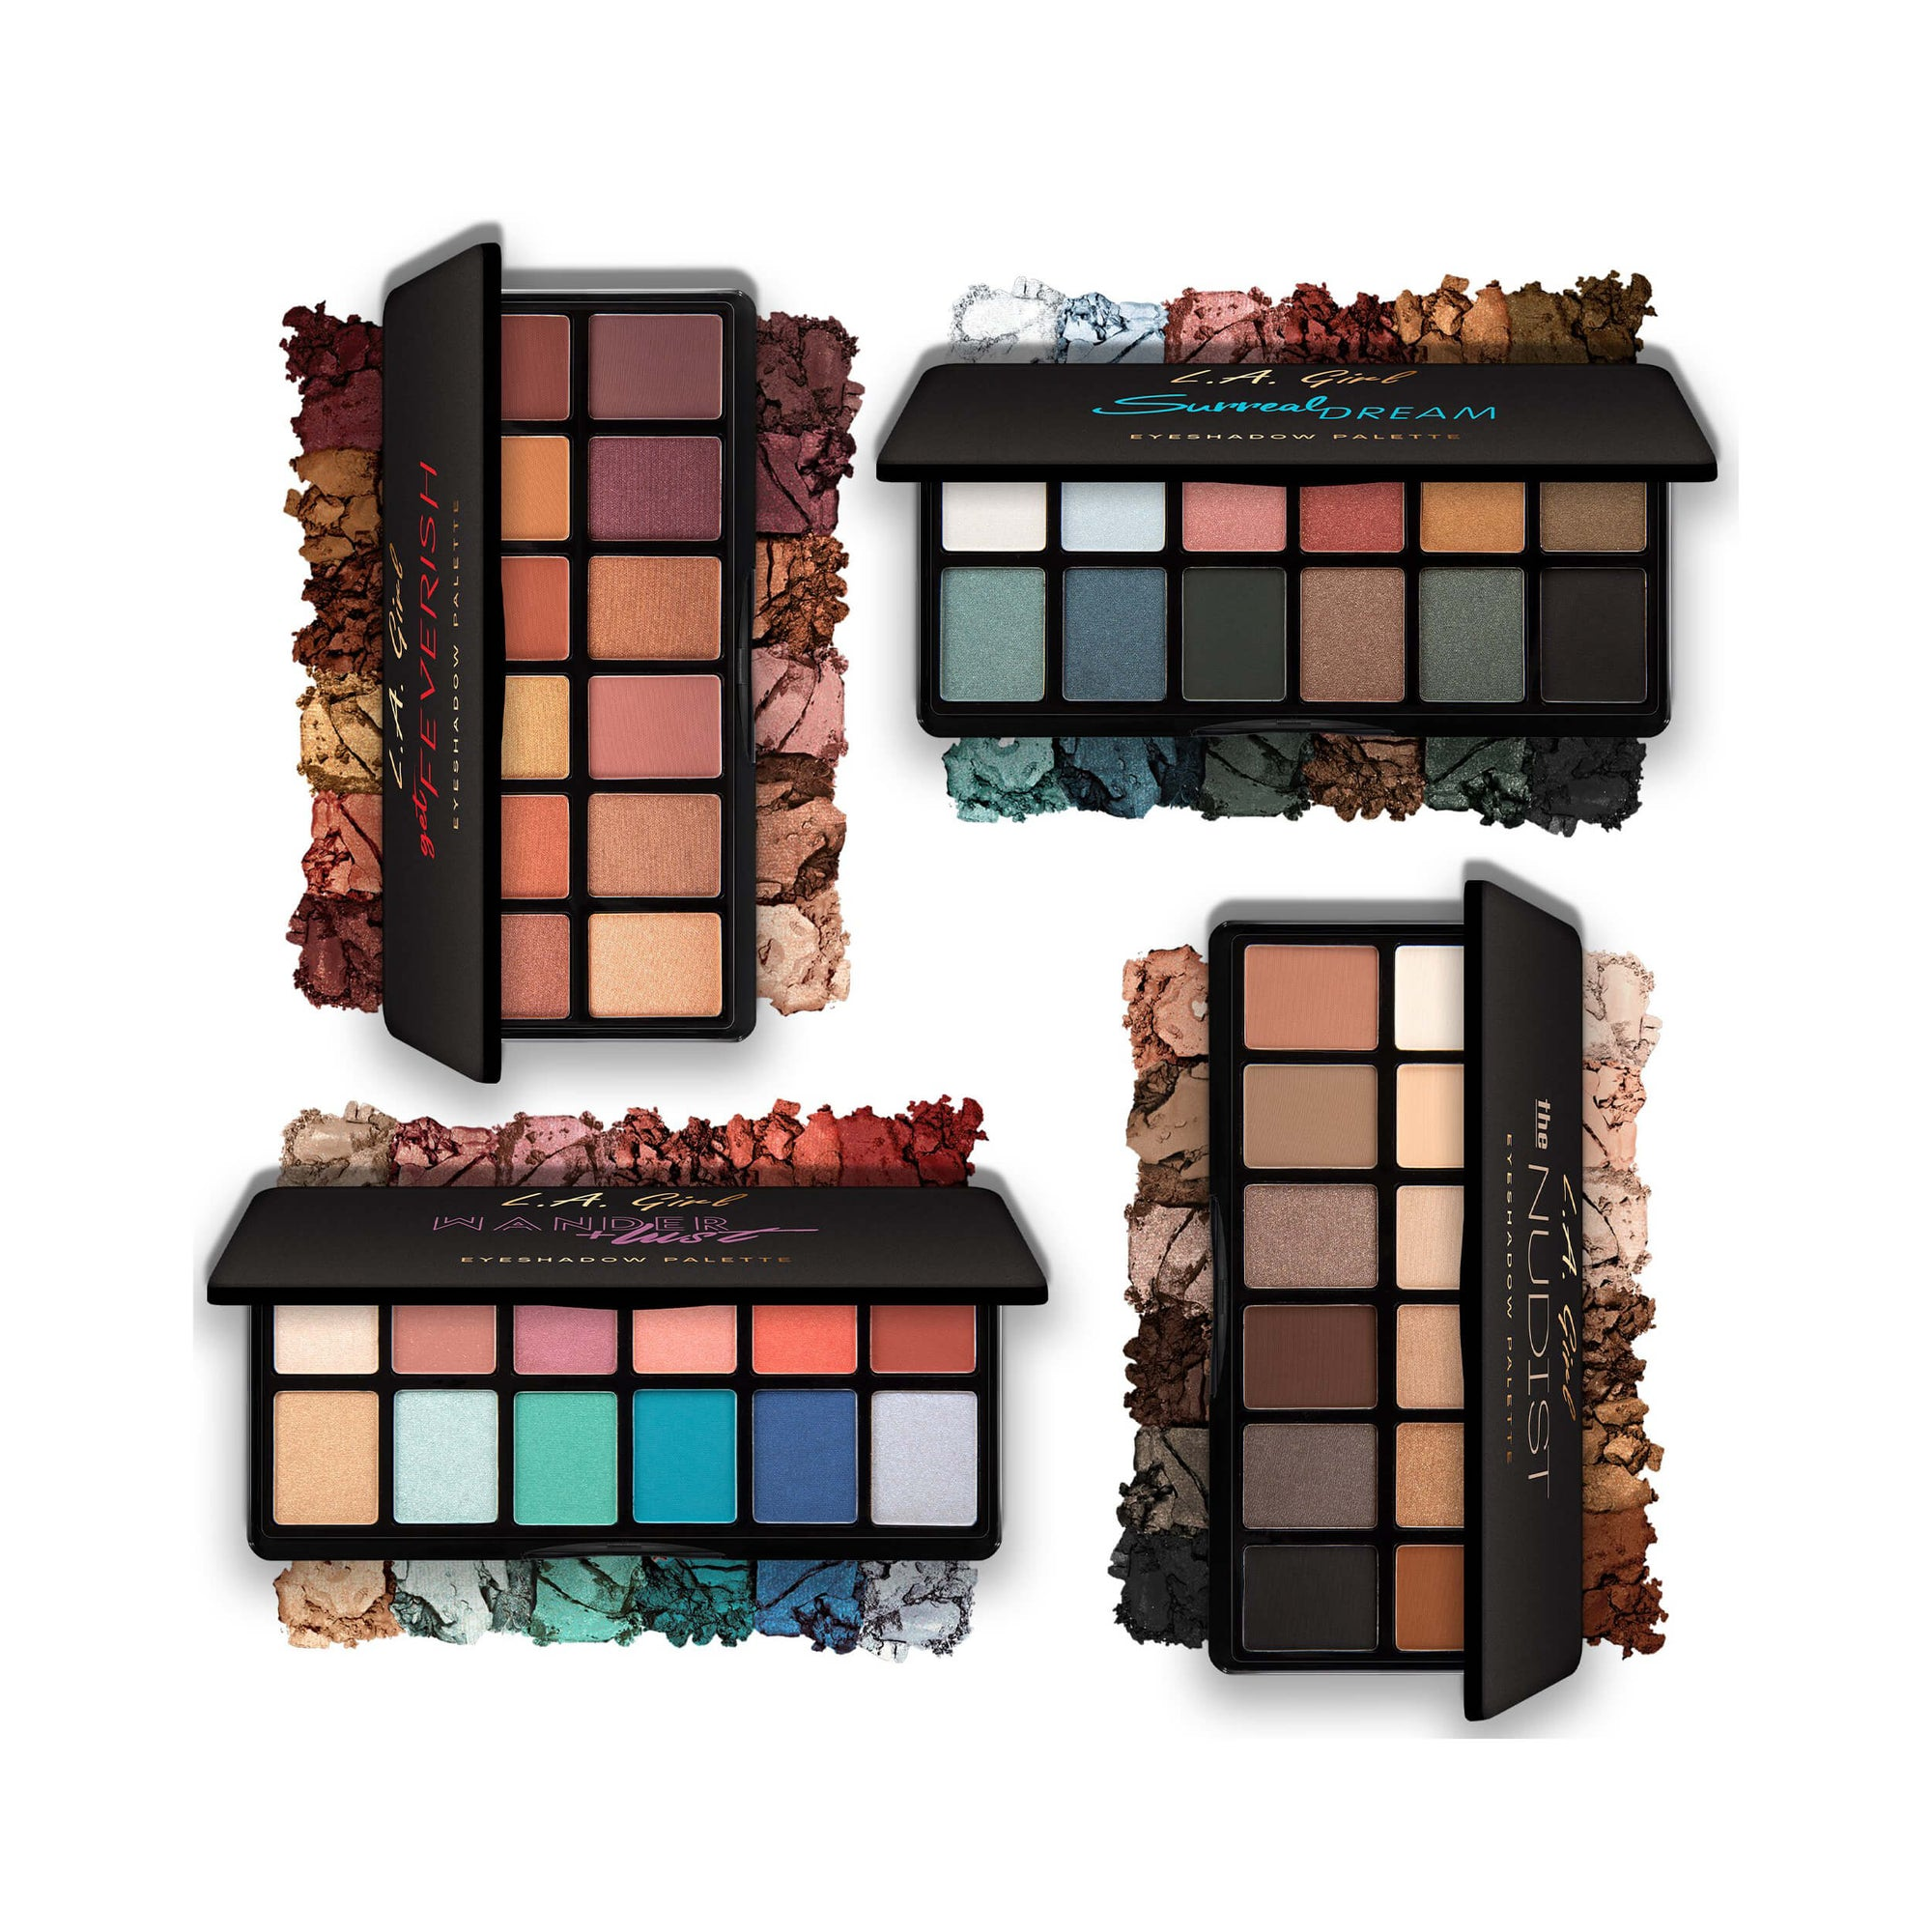 LA Girl USA Fanatic Eyeshadow Palette